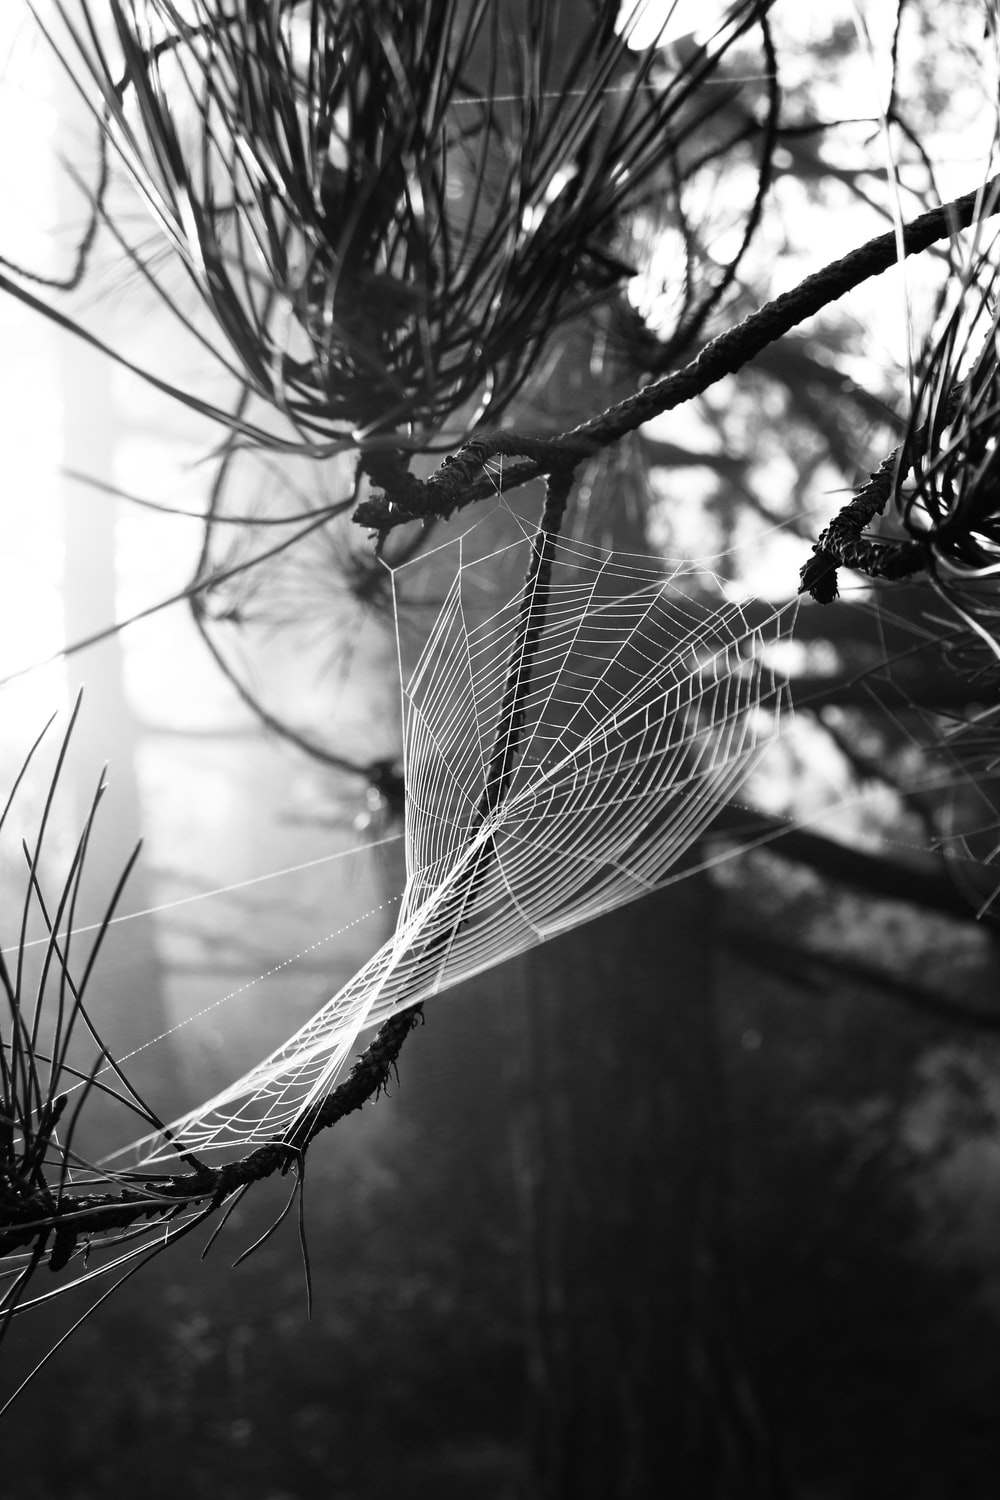 grayscale photo of spider web on tree branch